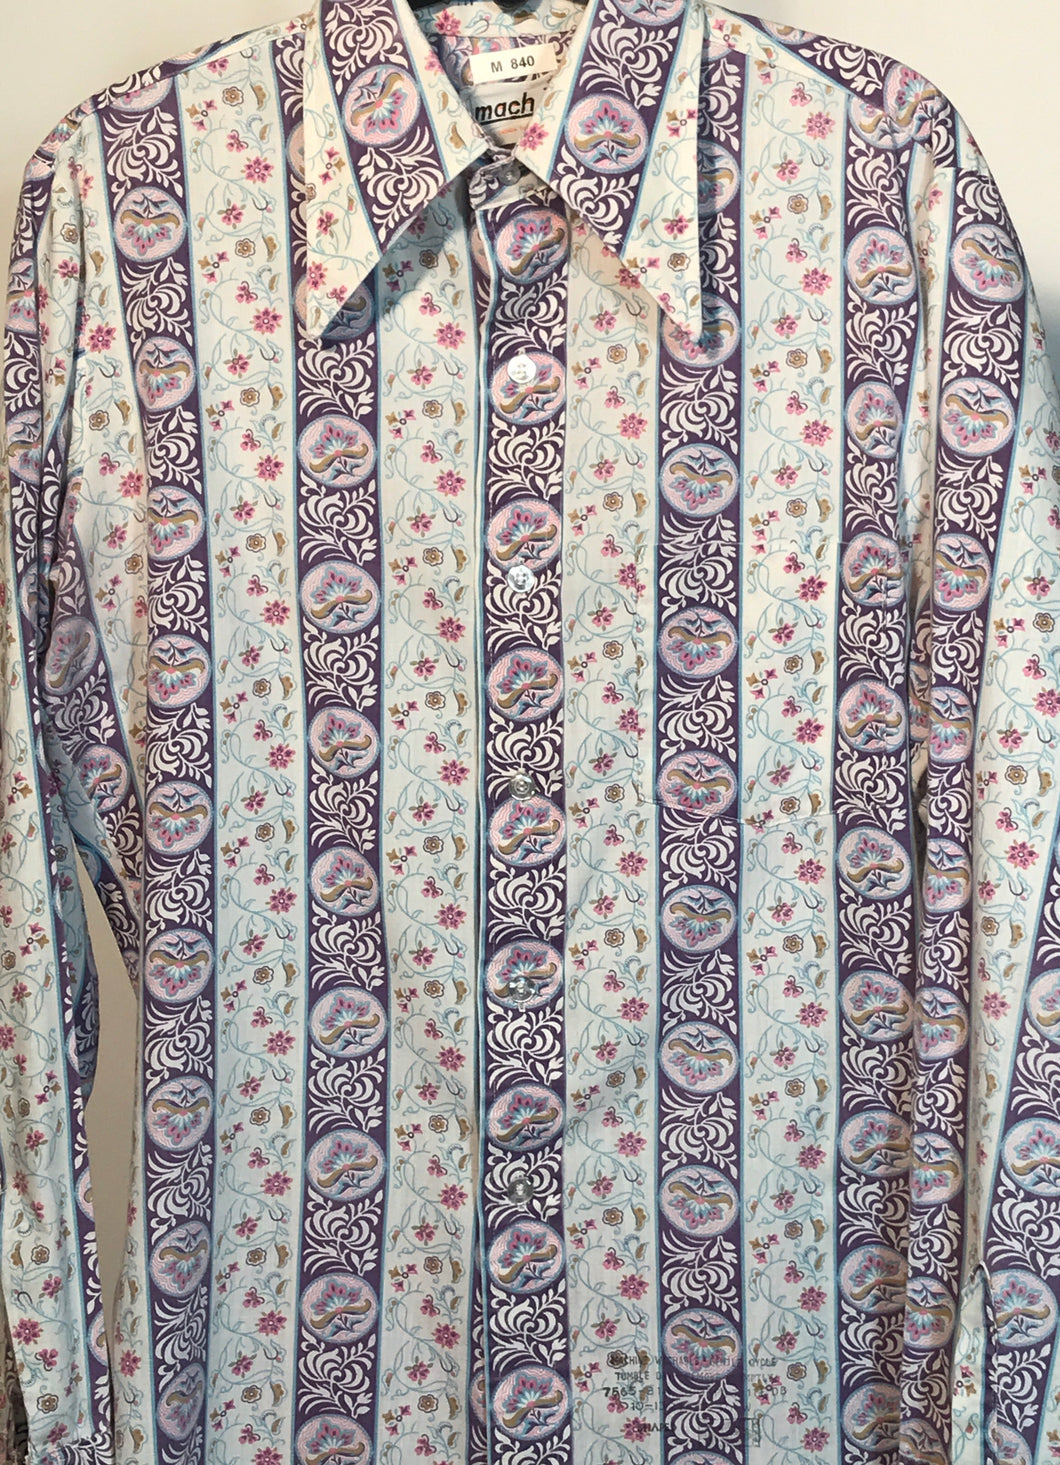 Men's Mach II by Arrow 1970s Disco Shirt Size Medium RENTAL M840